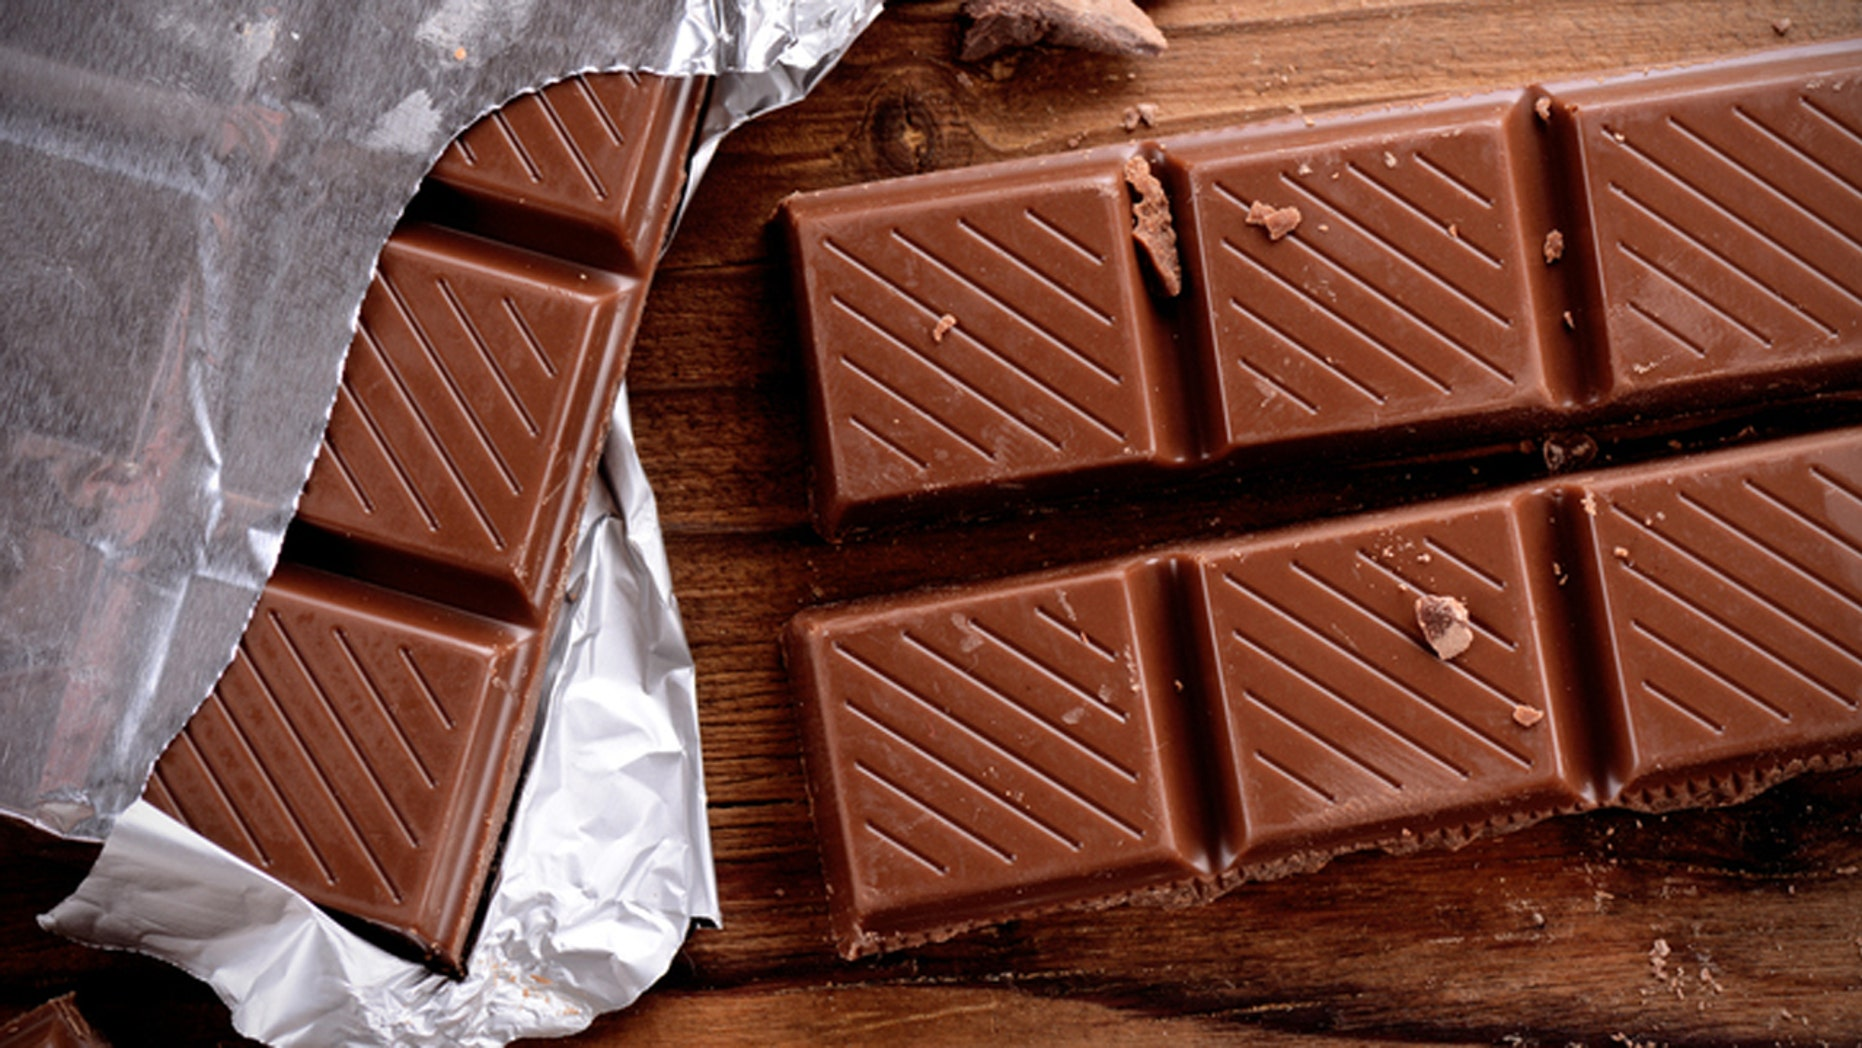 the chocolate bar on the wooden table